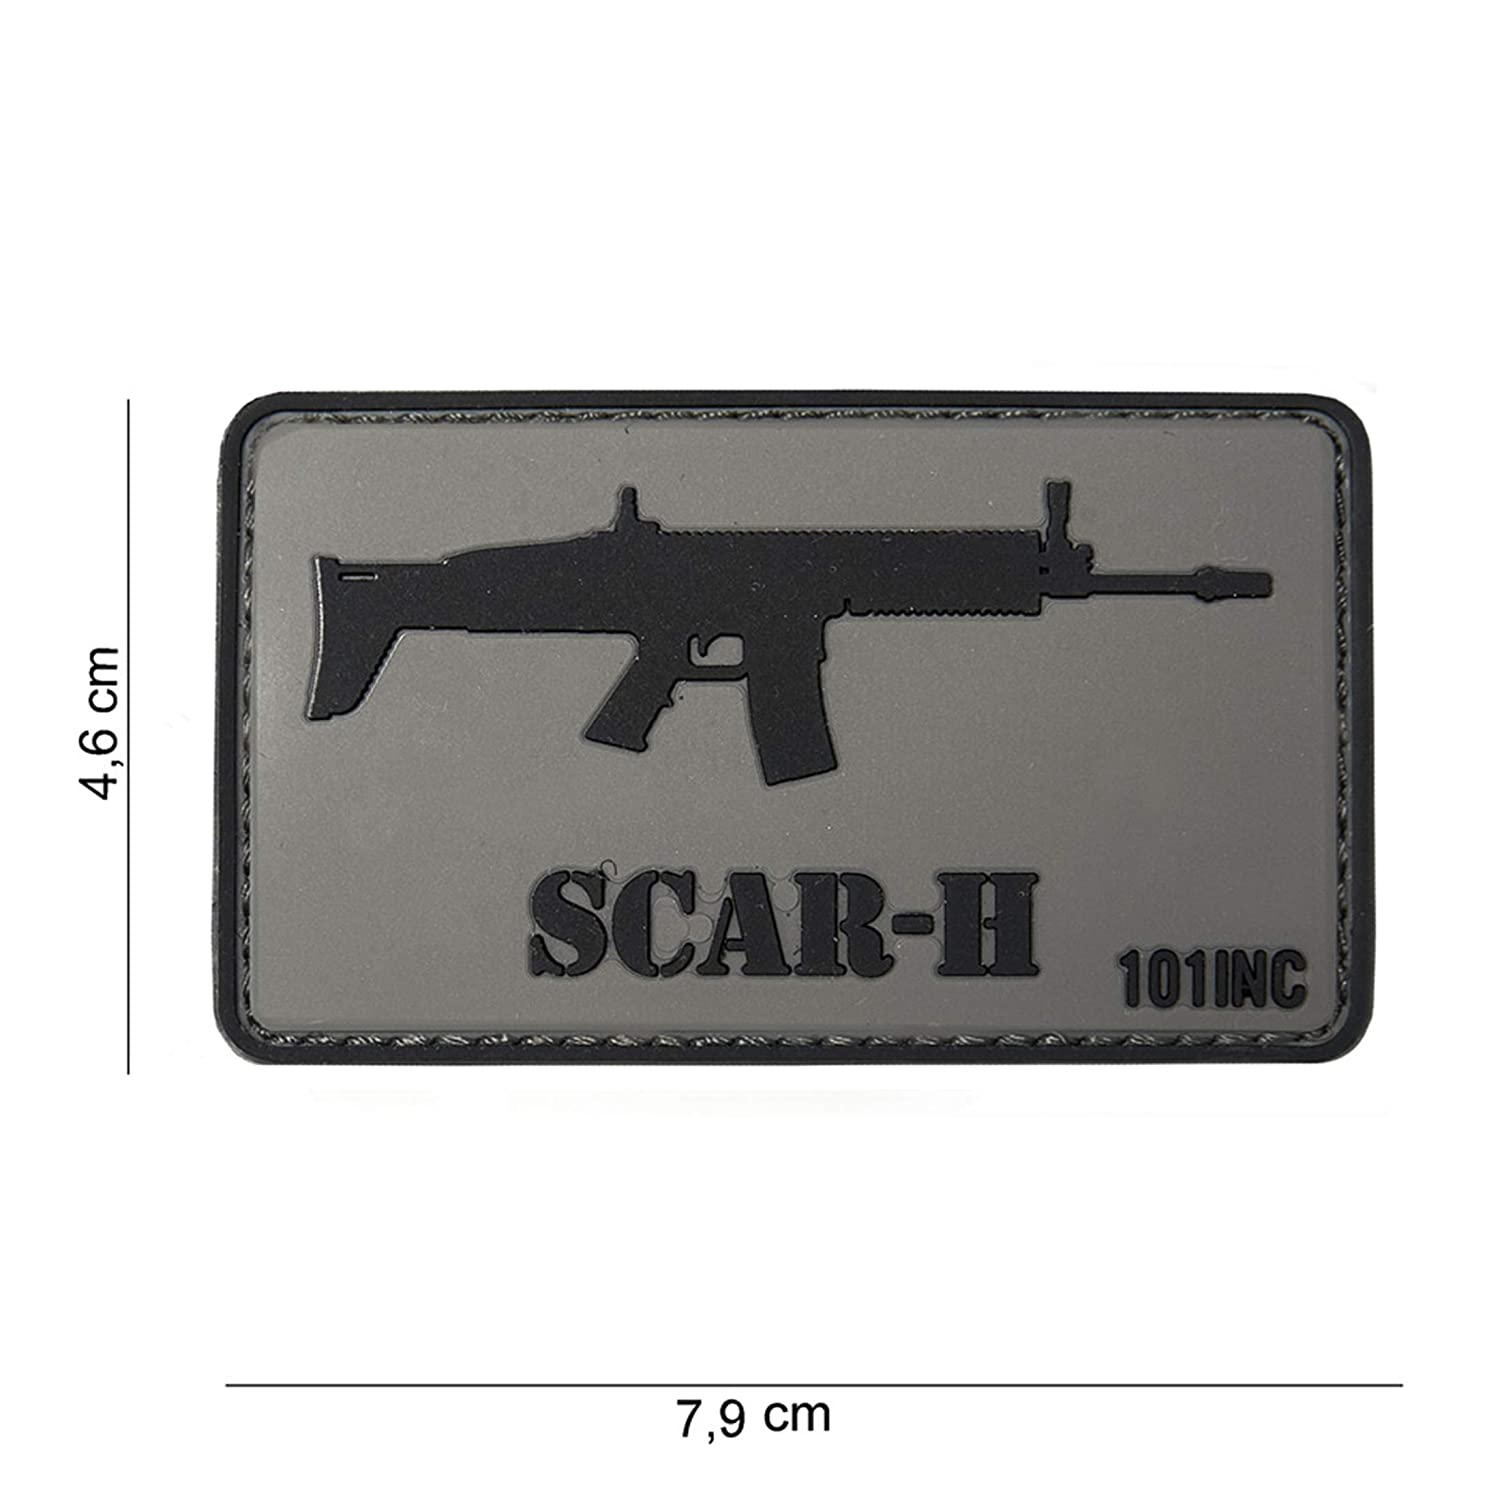 Tactical Attack PVC Scar-H grau Softair Sniper PVC Patch Logo Klett inkl gegenseite zum aufn/ähen Paintball Airsoft Abzeichen Fun Outdoor Freizeit